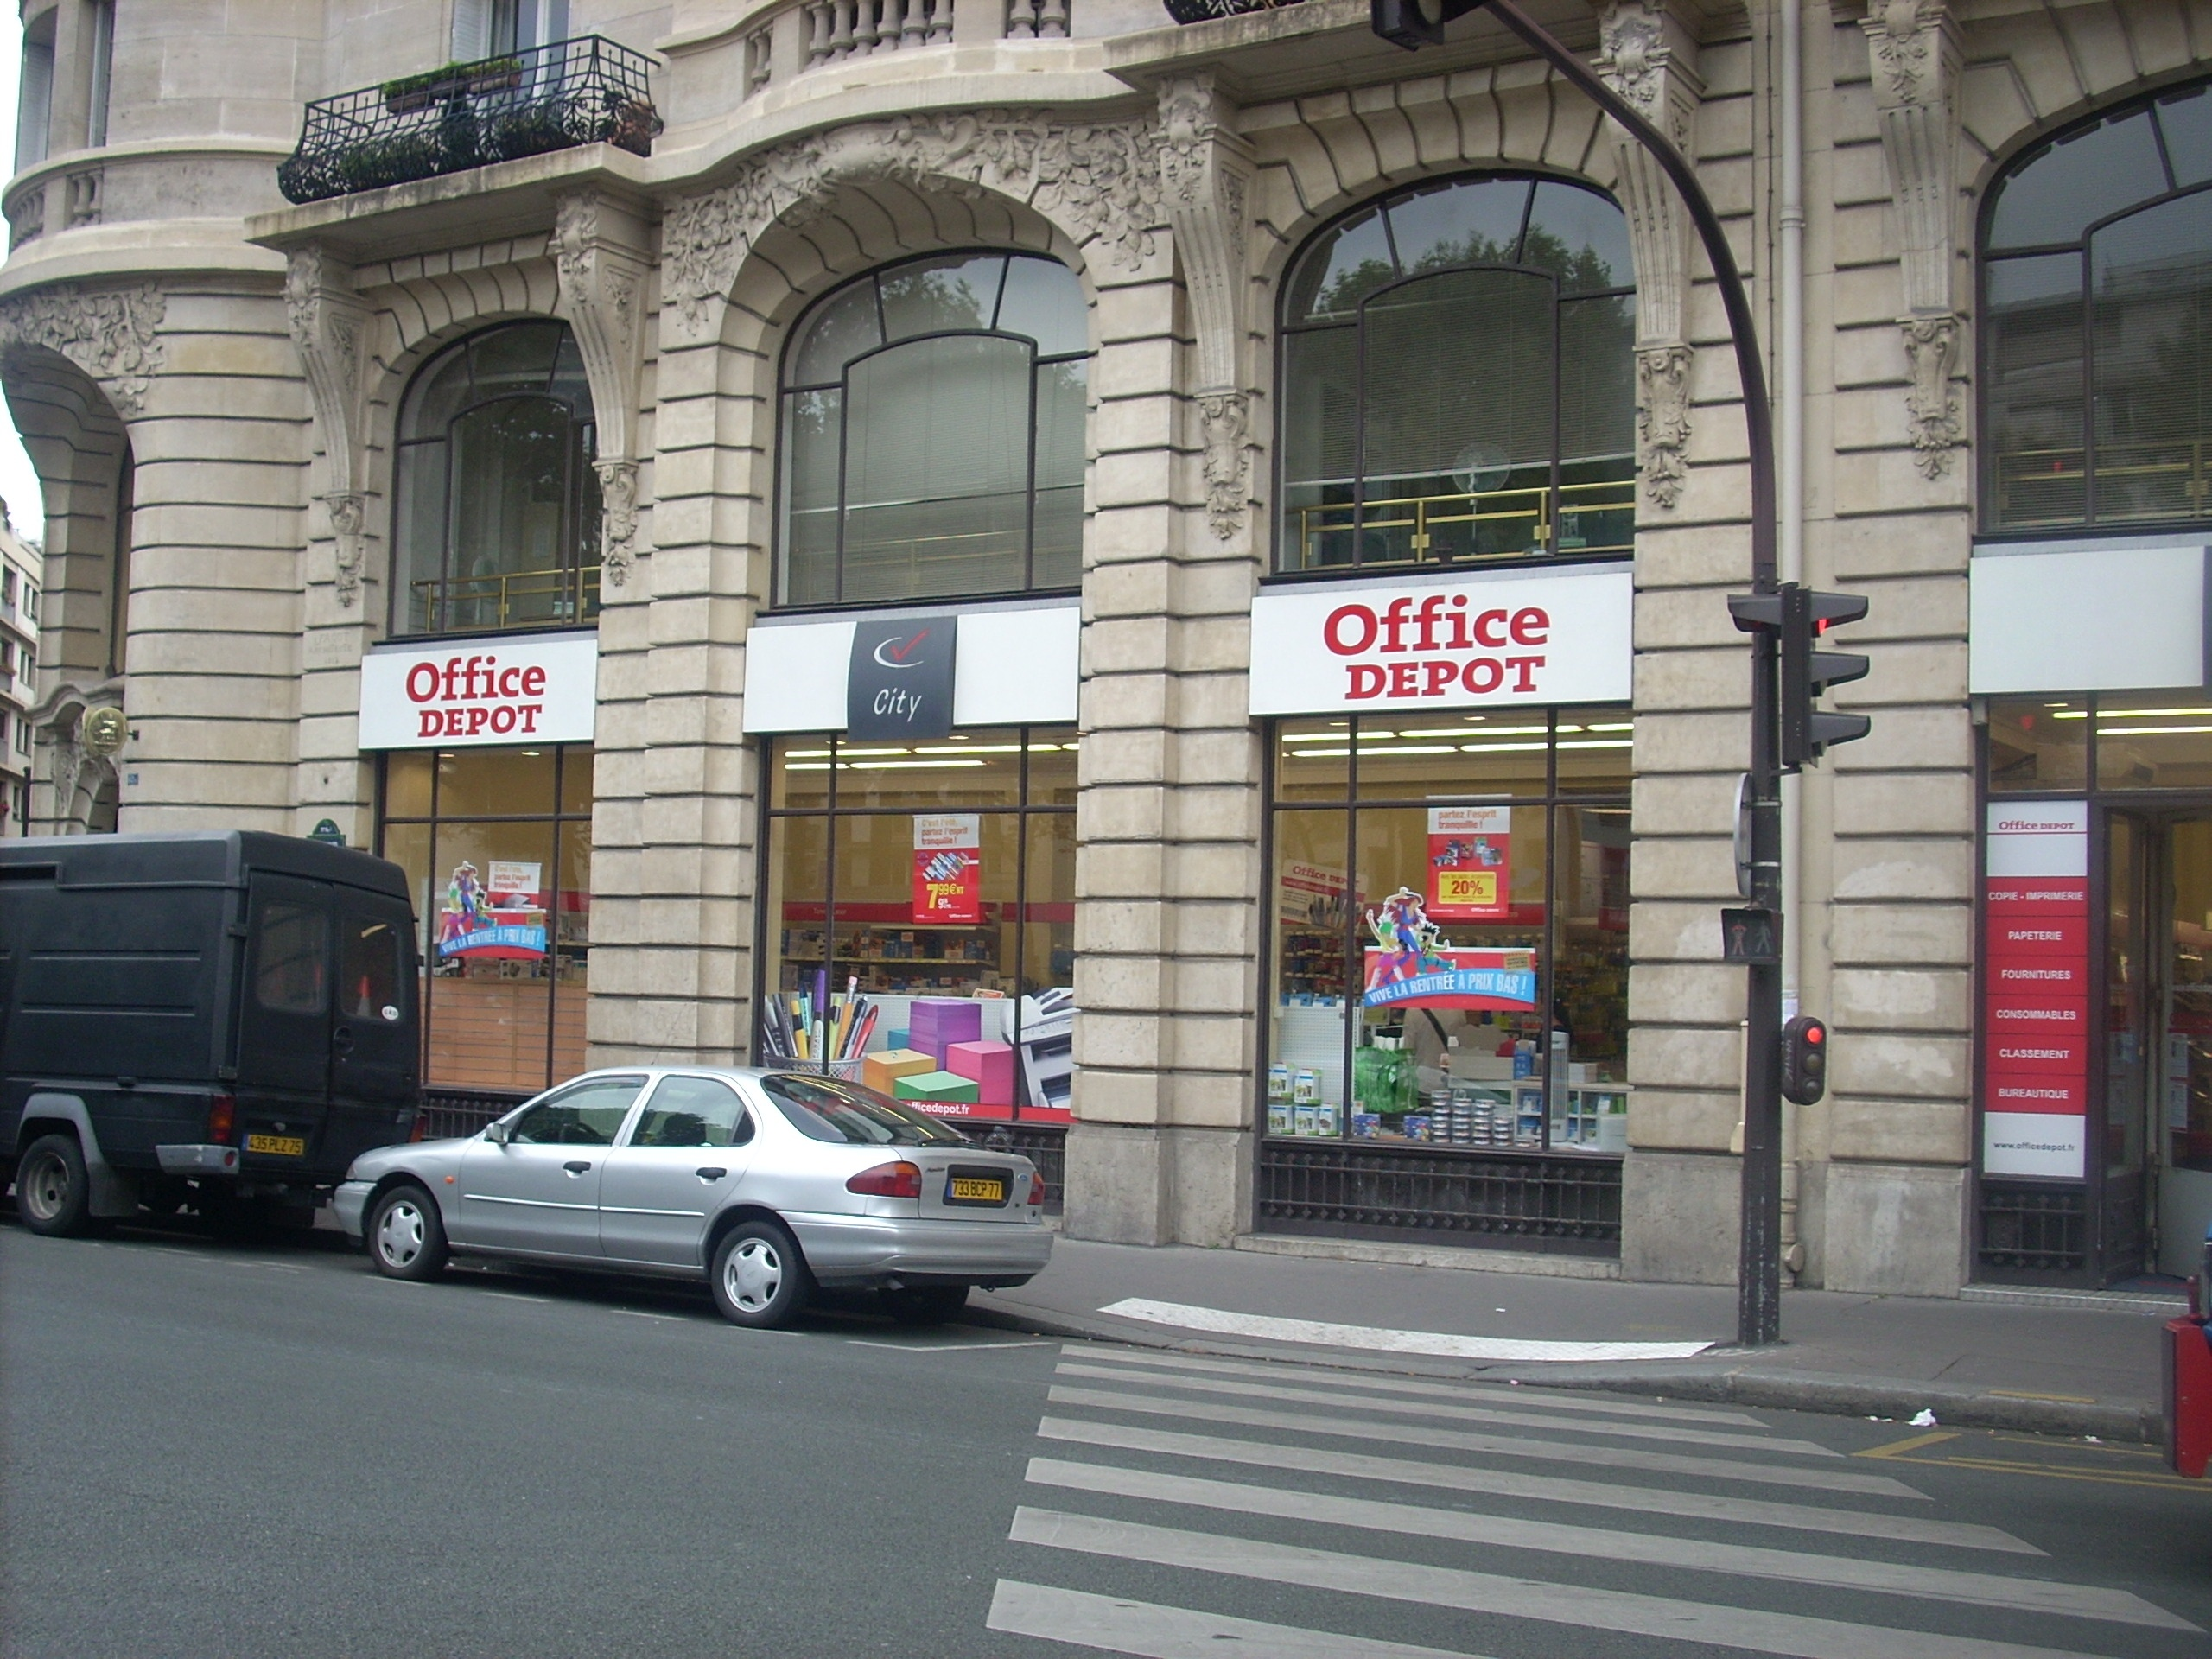 Magasin Bricolage Montpellier Ouvert Dimanche Magasin Bricolage Ouvert Dimanche Paris Trendy Magasin